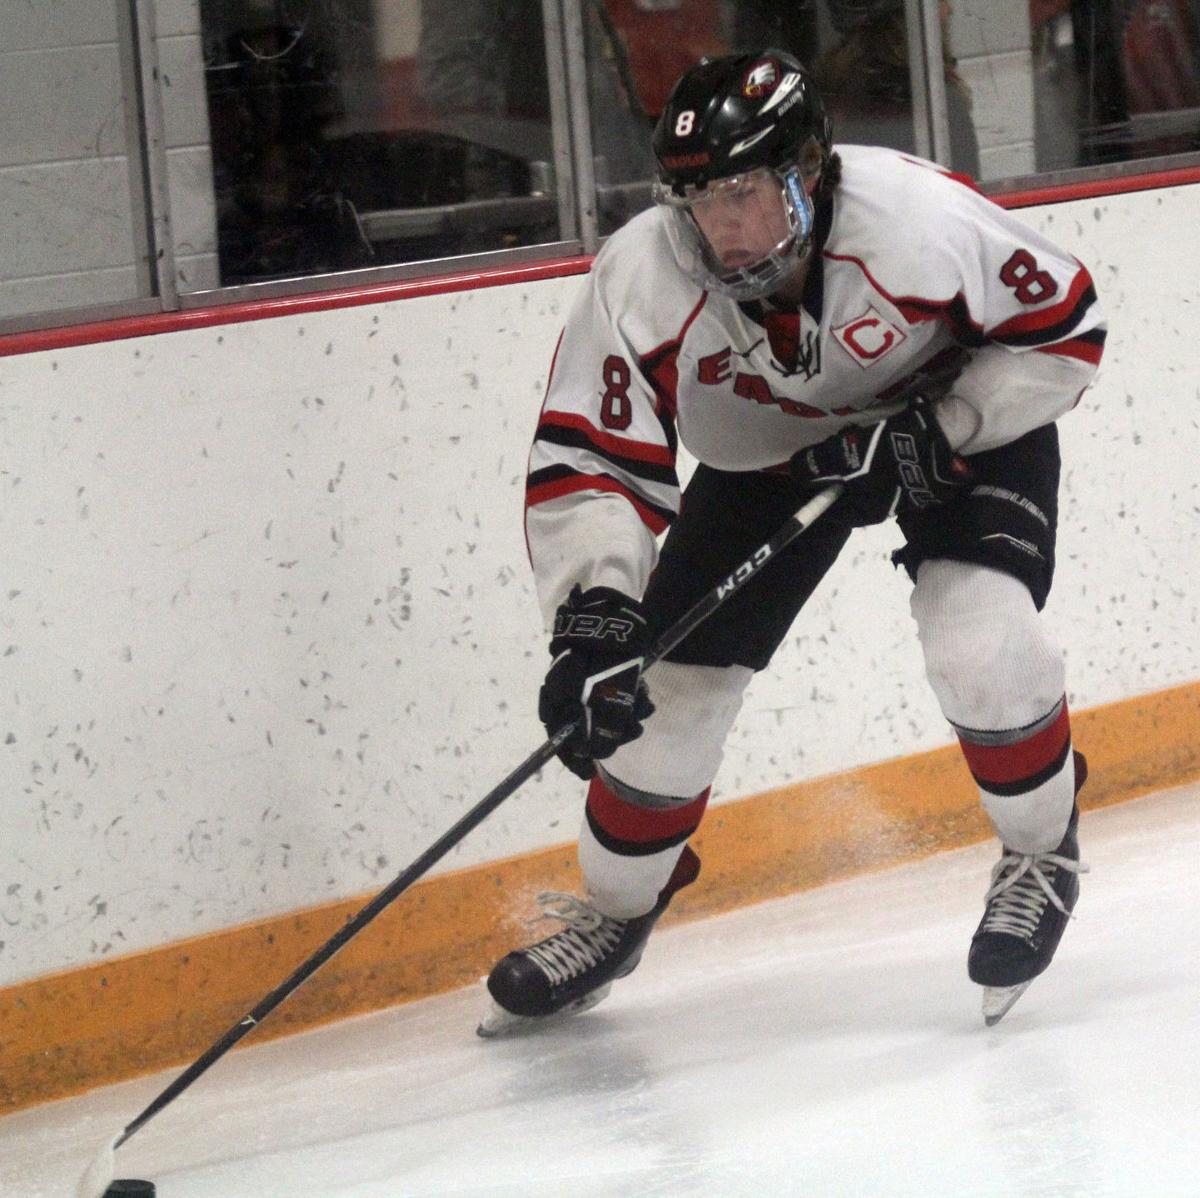 WIAA boys hockey photo: Sauk Prairie junior Riley Jelinek